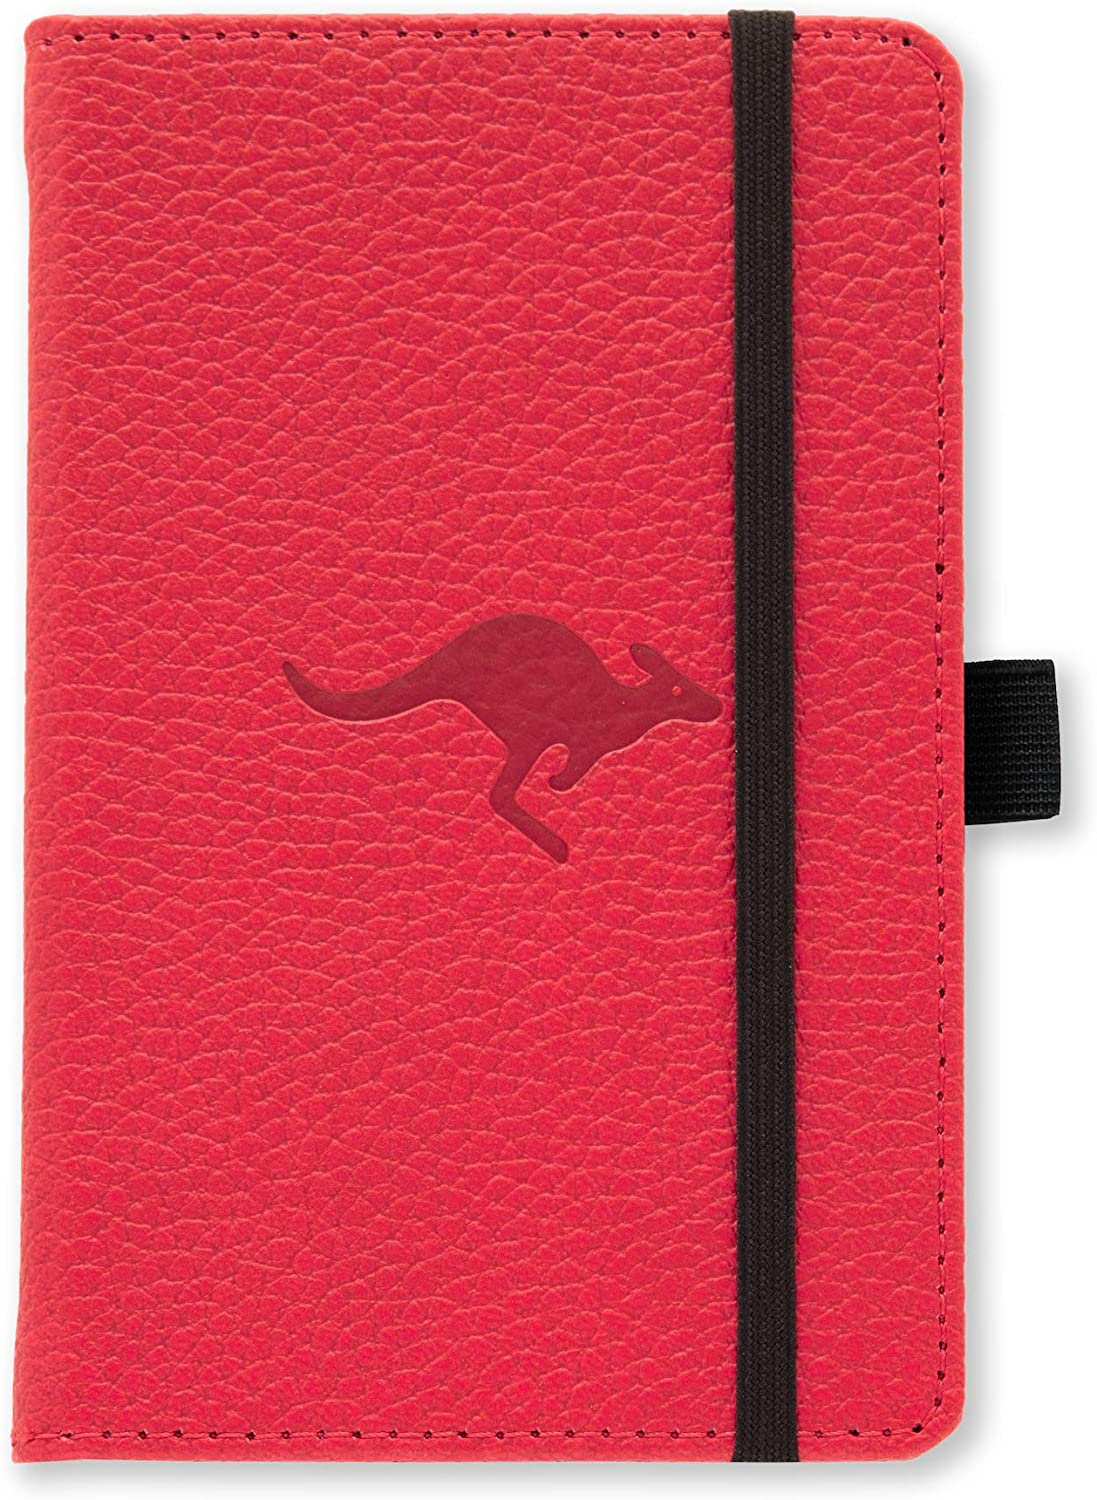 Dingbats Wildlife Dotted Pocket A6 Hardcover Notebook - PU Leather, Perforated 100gsm Ink-Proof Paper, Pocket, Elastic Closure, Pen Holder, Bookmark (Red Kangaroo)